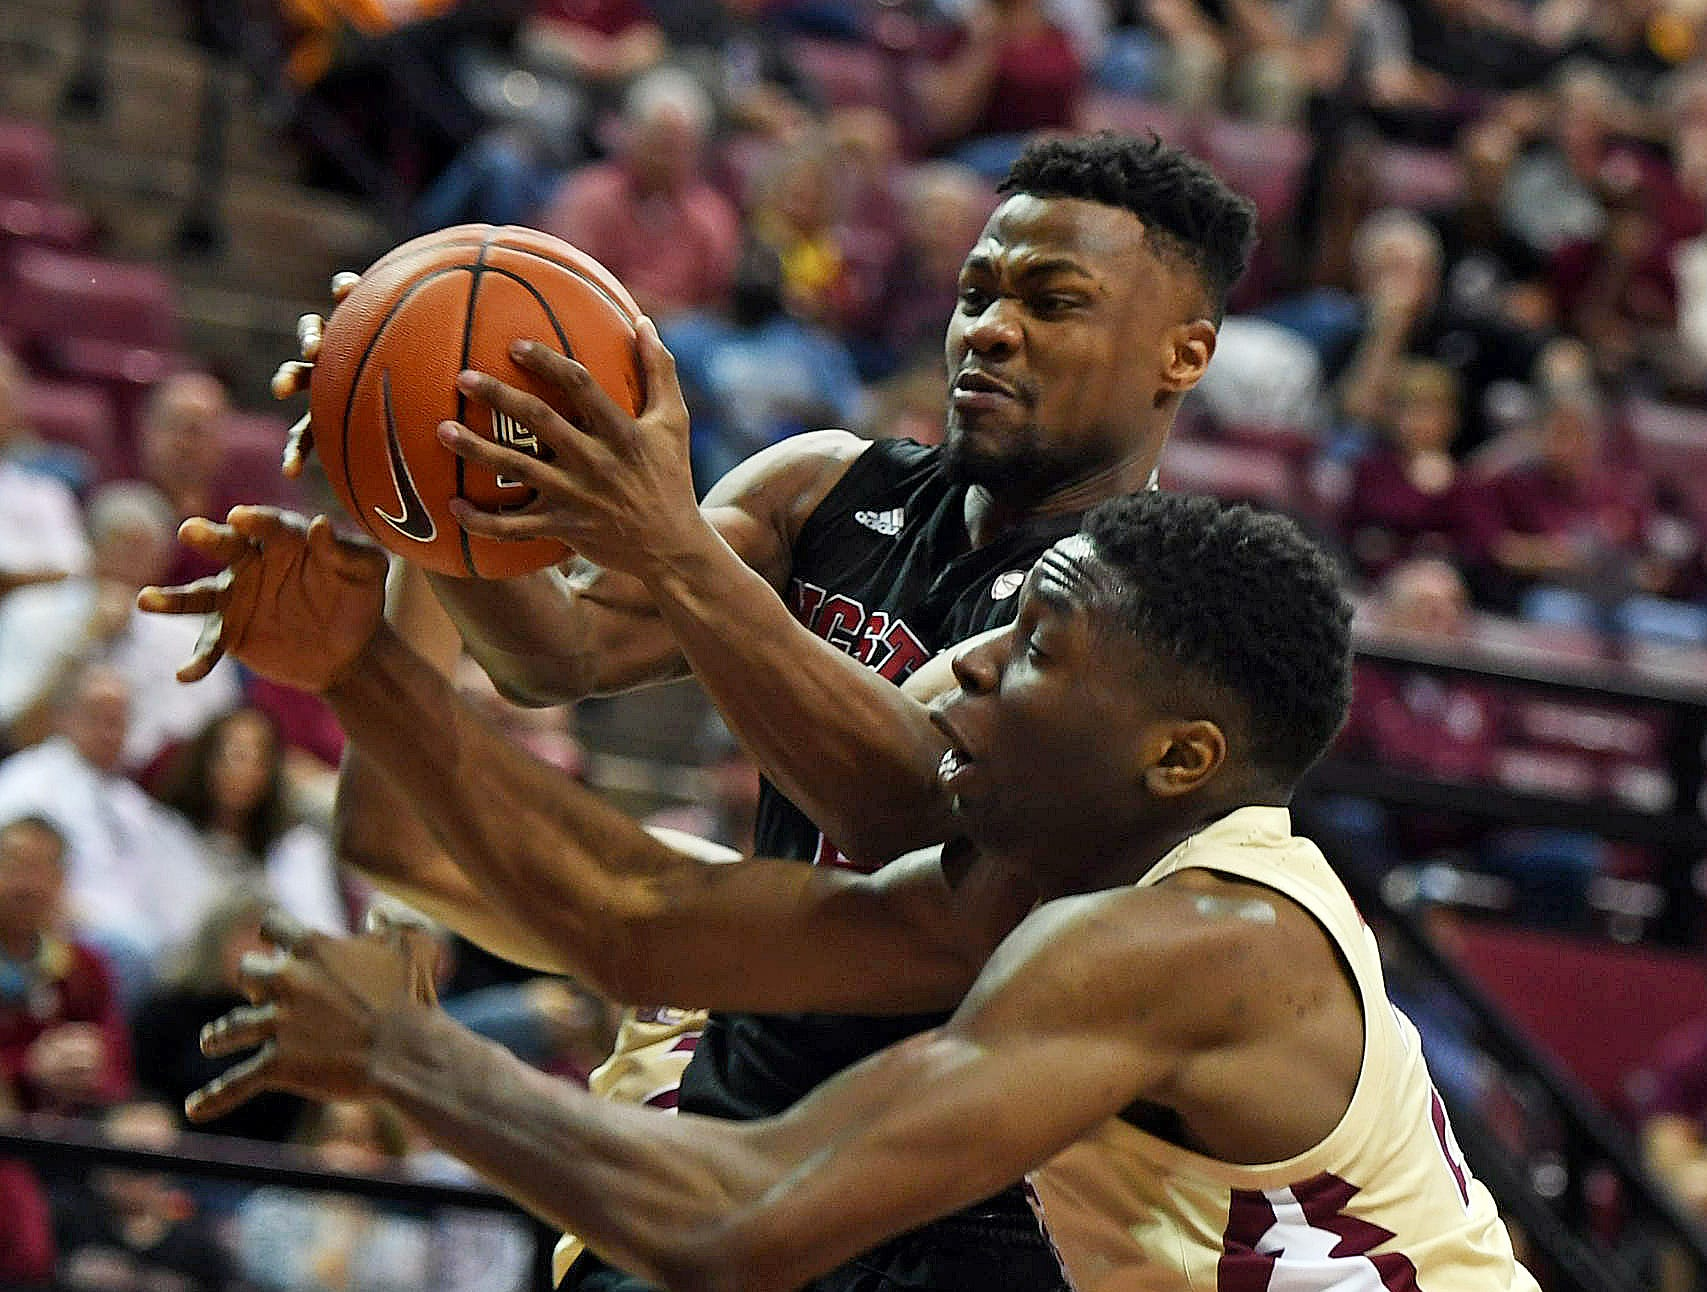 Mar 2, 2019; Tallahassee, FL, USA; North Carolina State Wolfpack guard Torin Dorn (2) fights for a rebound against Florida State Seminoles forward Mfiondu Kabengele (25) during the first half at Donald L. Tucker Center. Mandatory Credit: Melina Myers-USA TODAY Sports